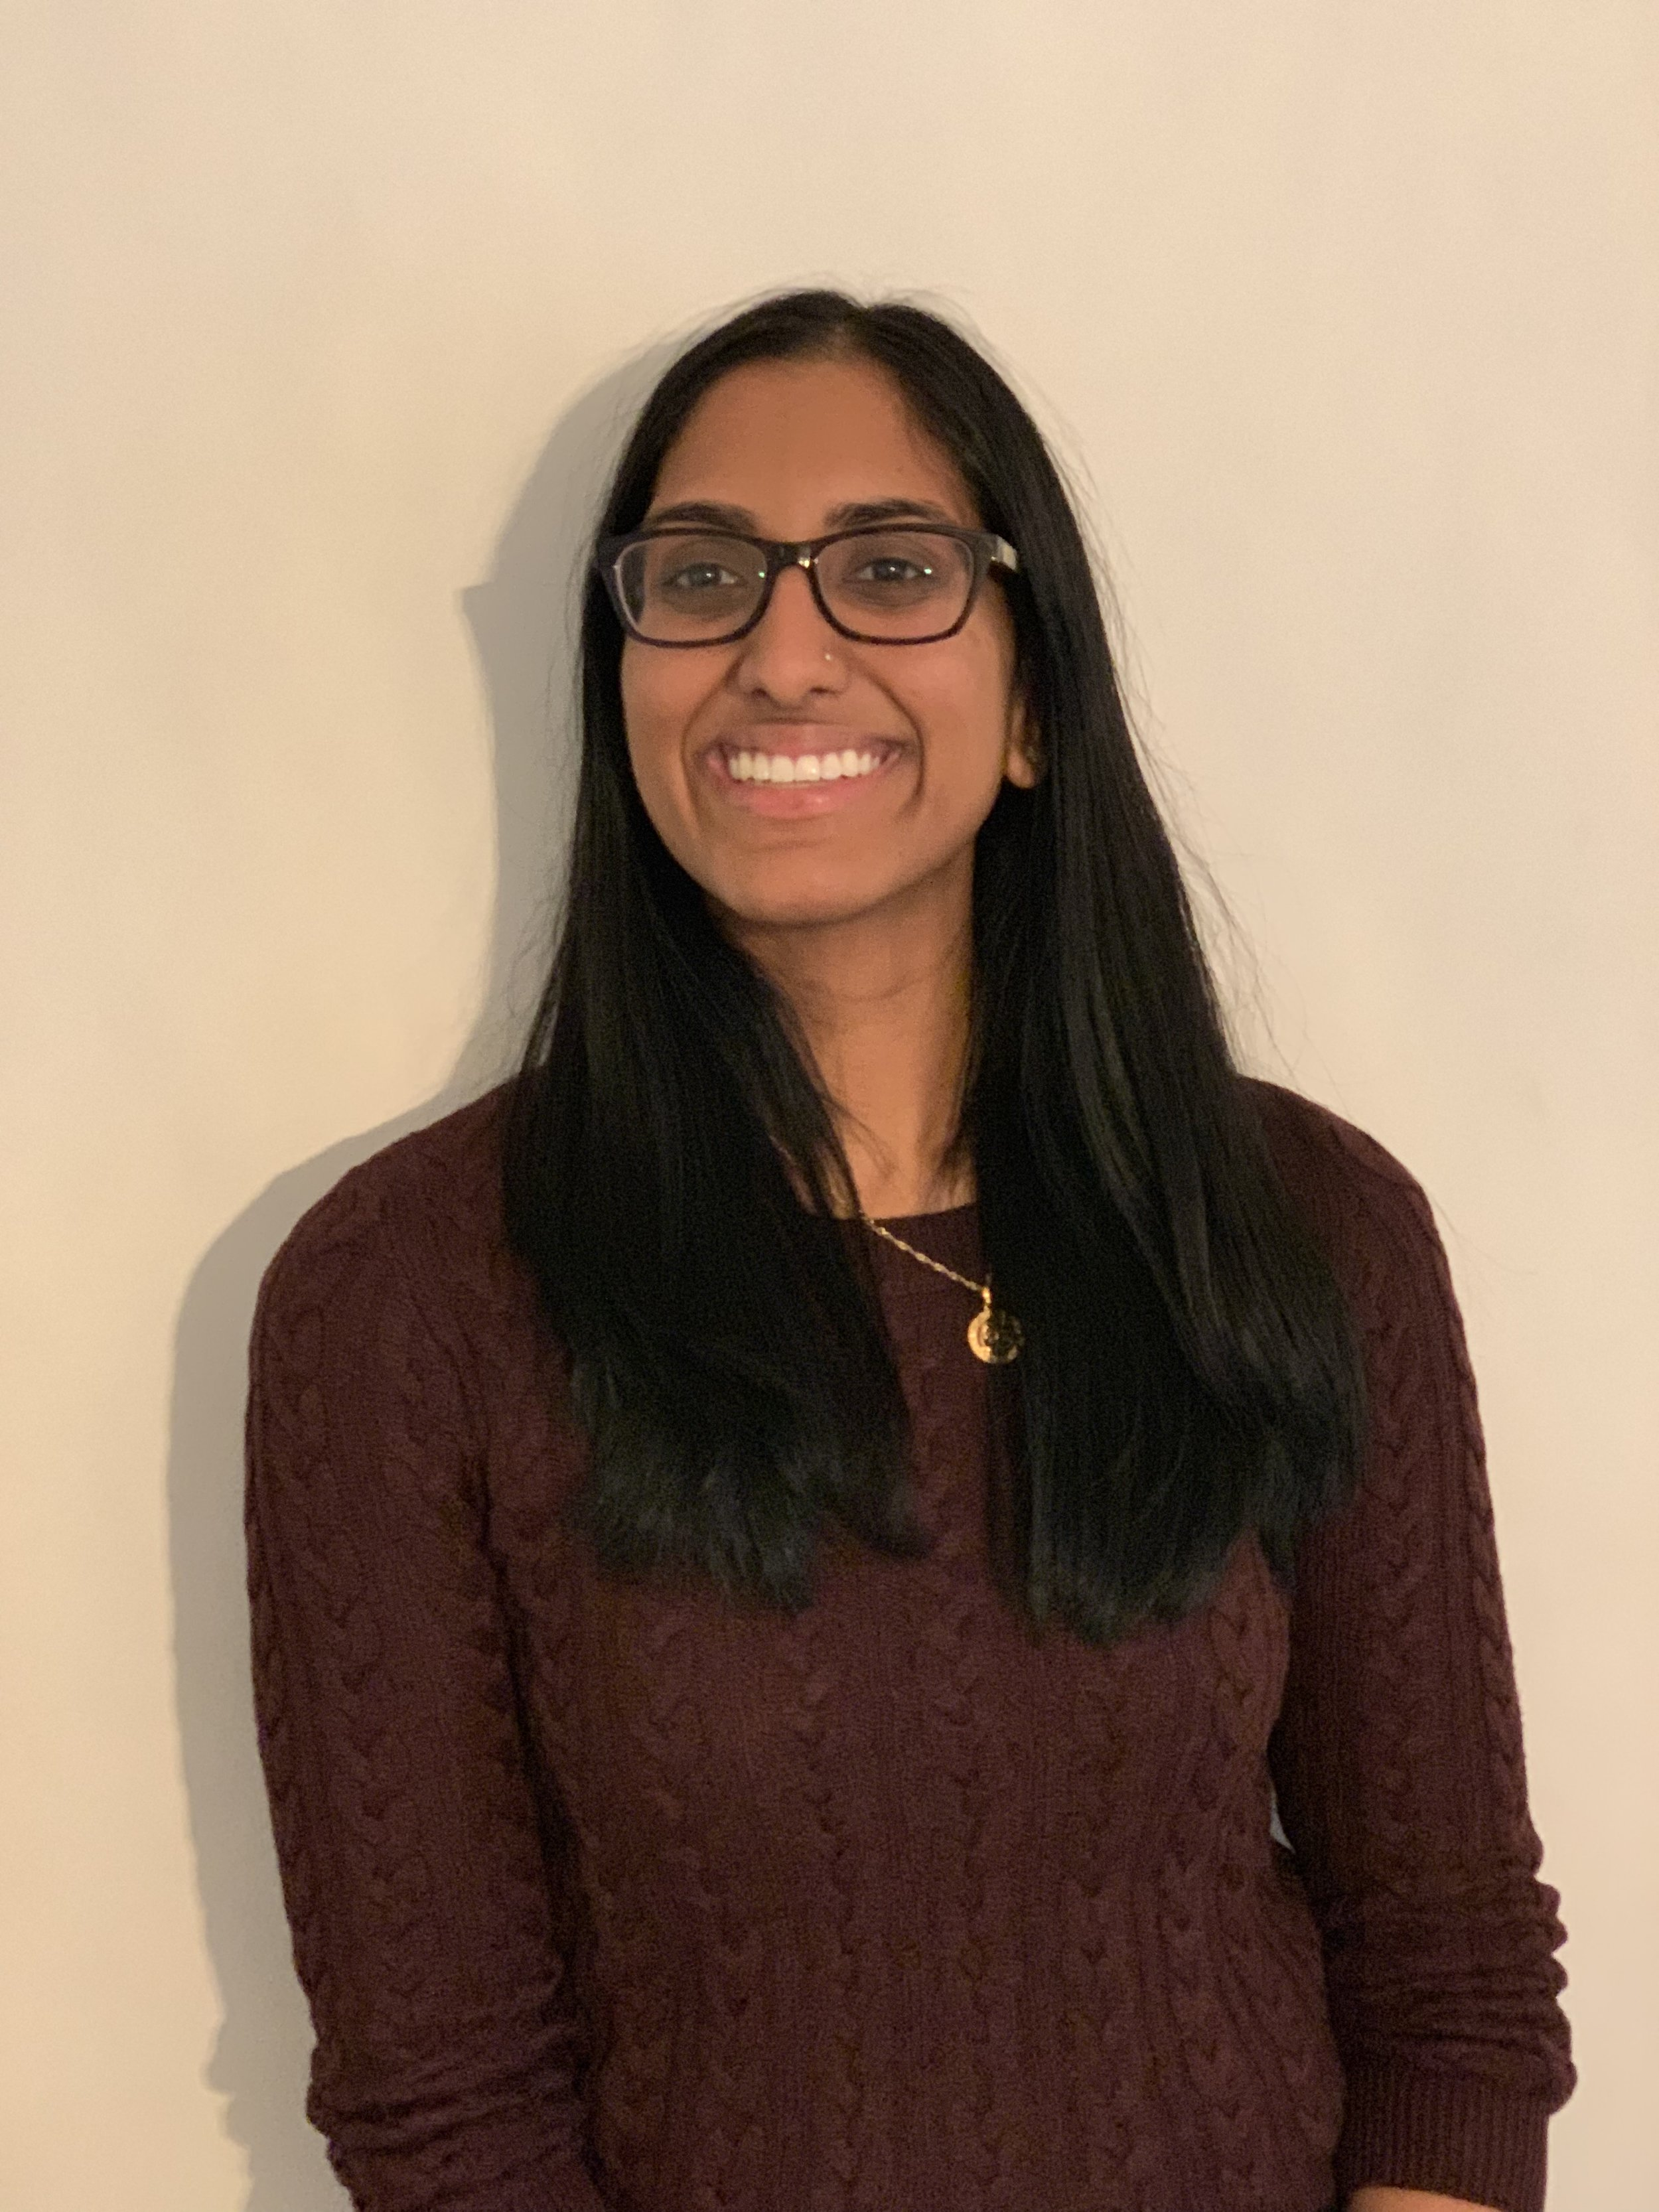 Annamika Beepat - Junior Administrator at Summer on the Hill and an Iona Graduate Student pursuing a Marriage and Family Therapy Degree